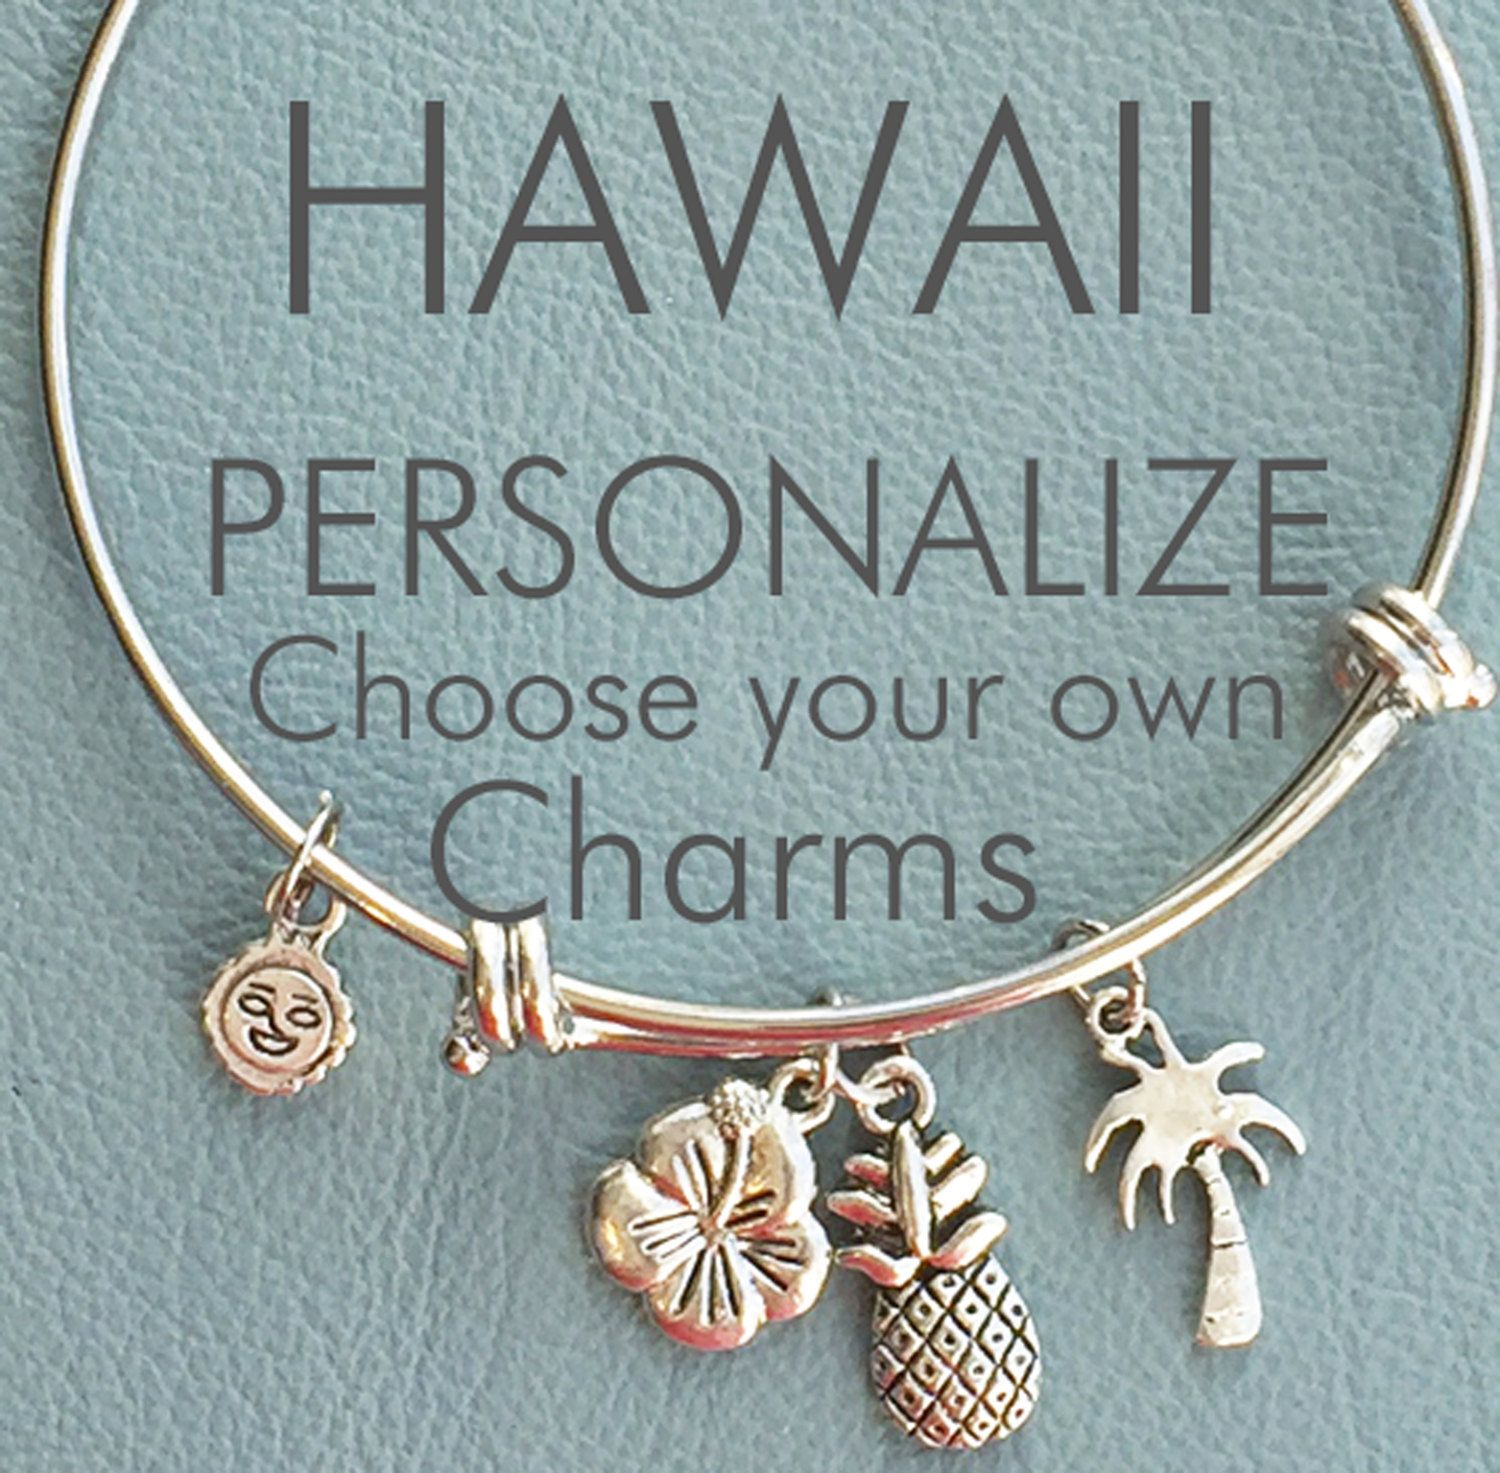 Hawaiian Vacation Customize Alex Ani Inspired Your Own Silver Bracelet Charms Personalized Gift Surfer Pinele Palm Outrigger Trip By Arrimage On